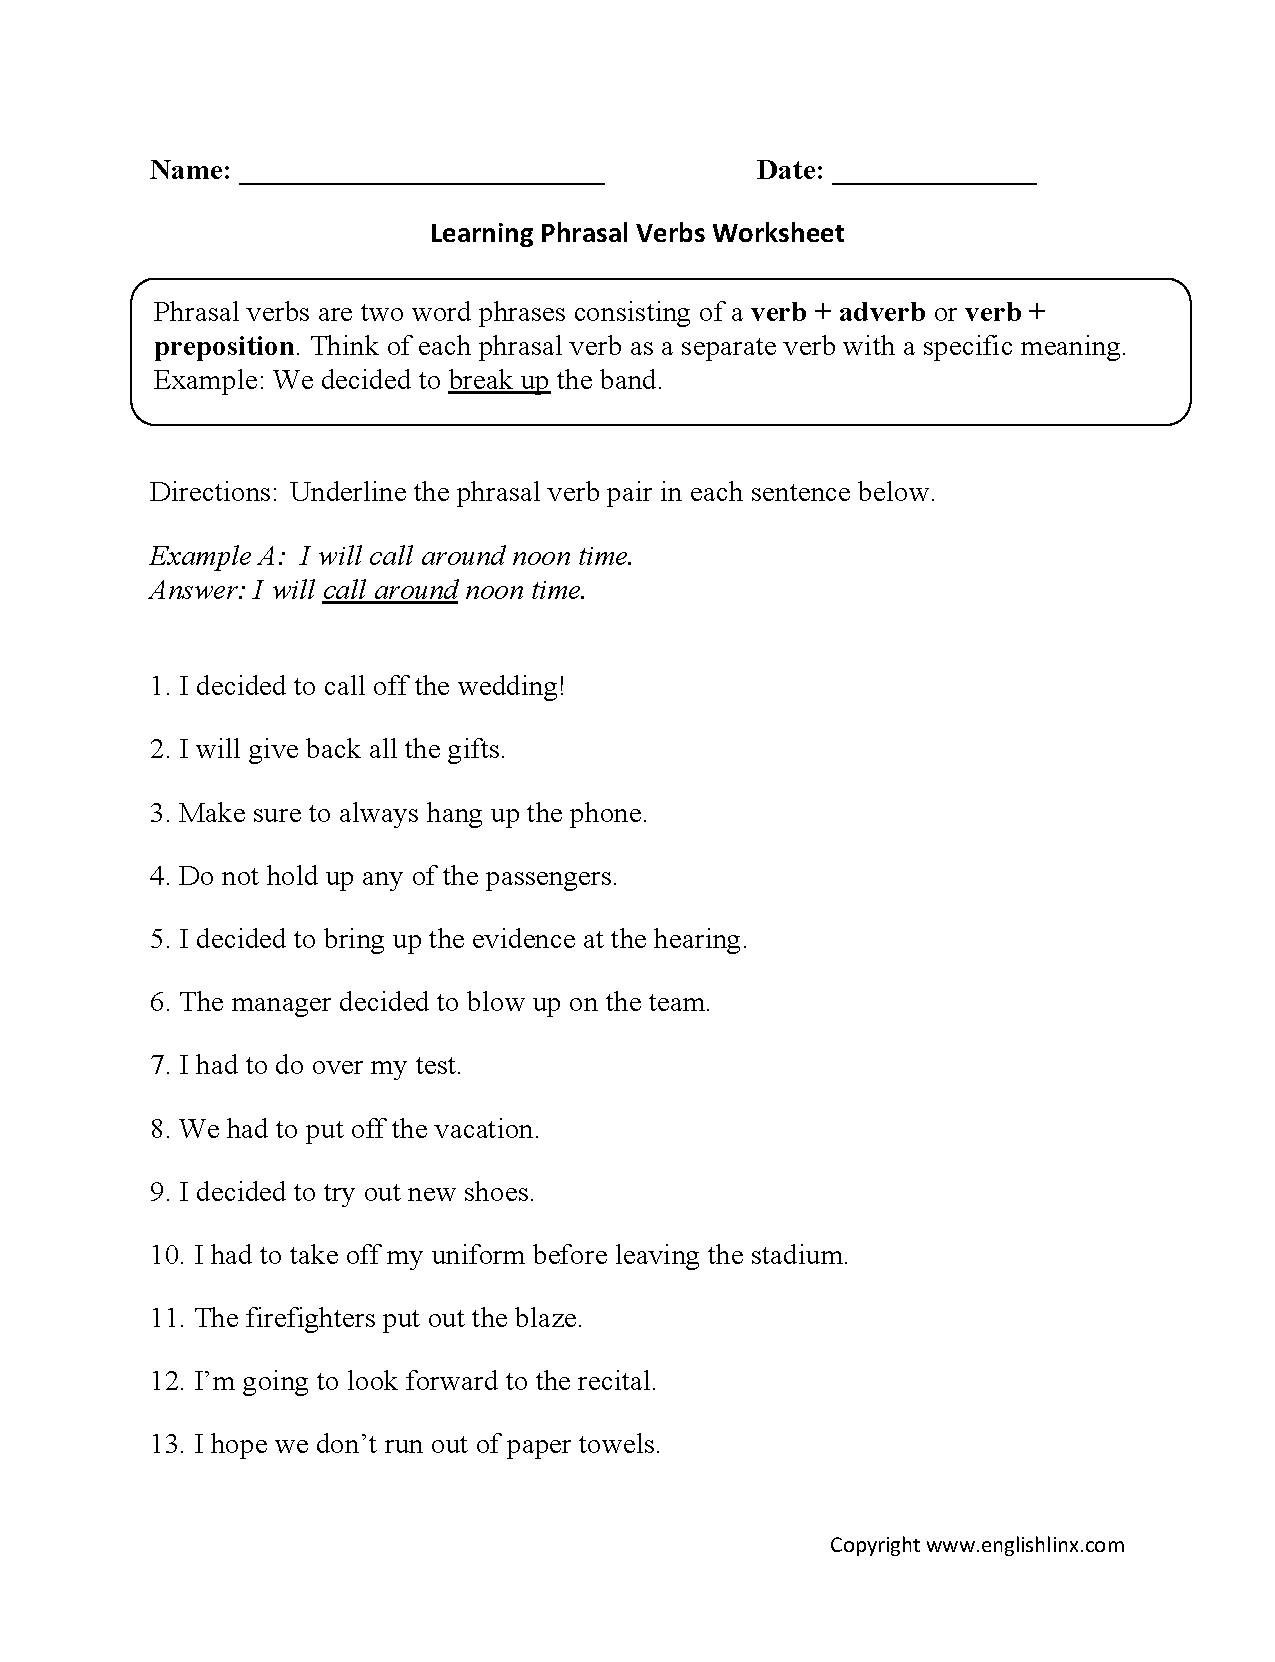 Phrasal Verbs Worksheets 7th Grade English Pinterest